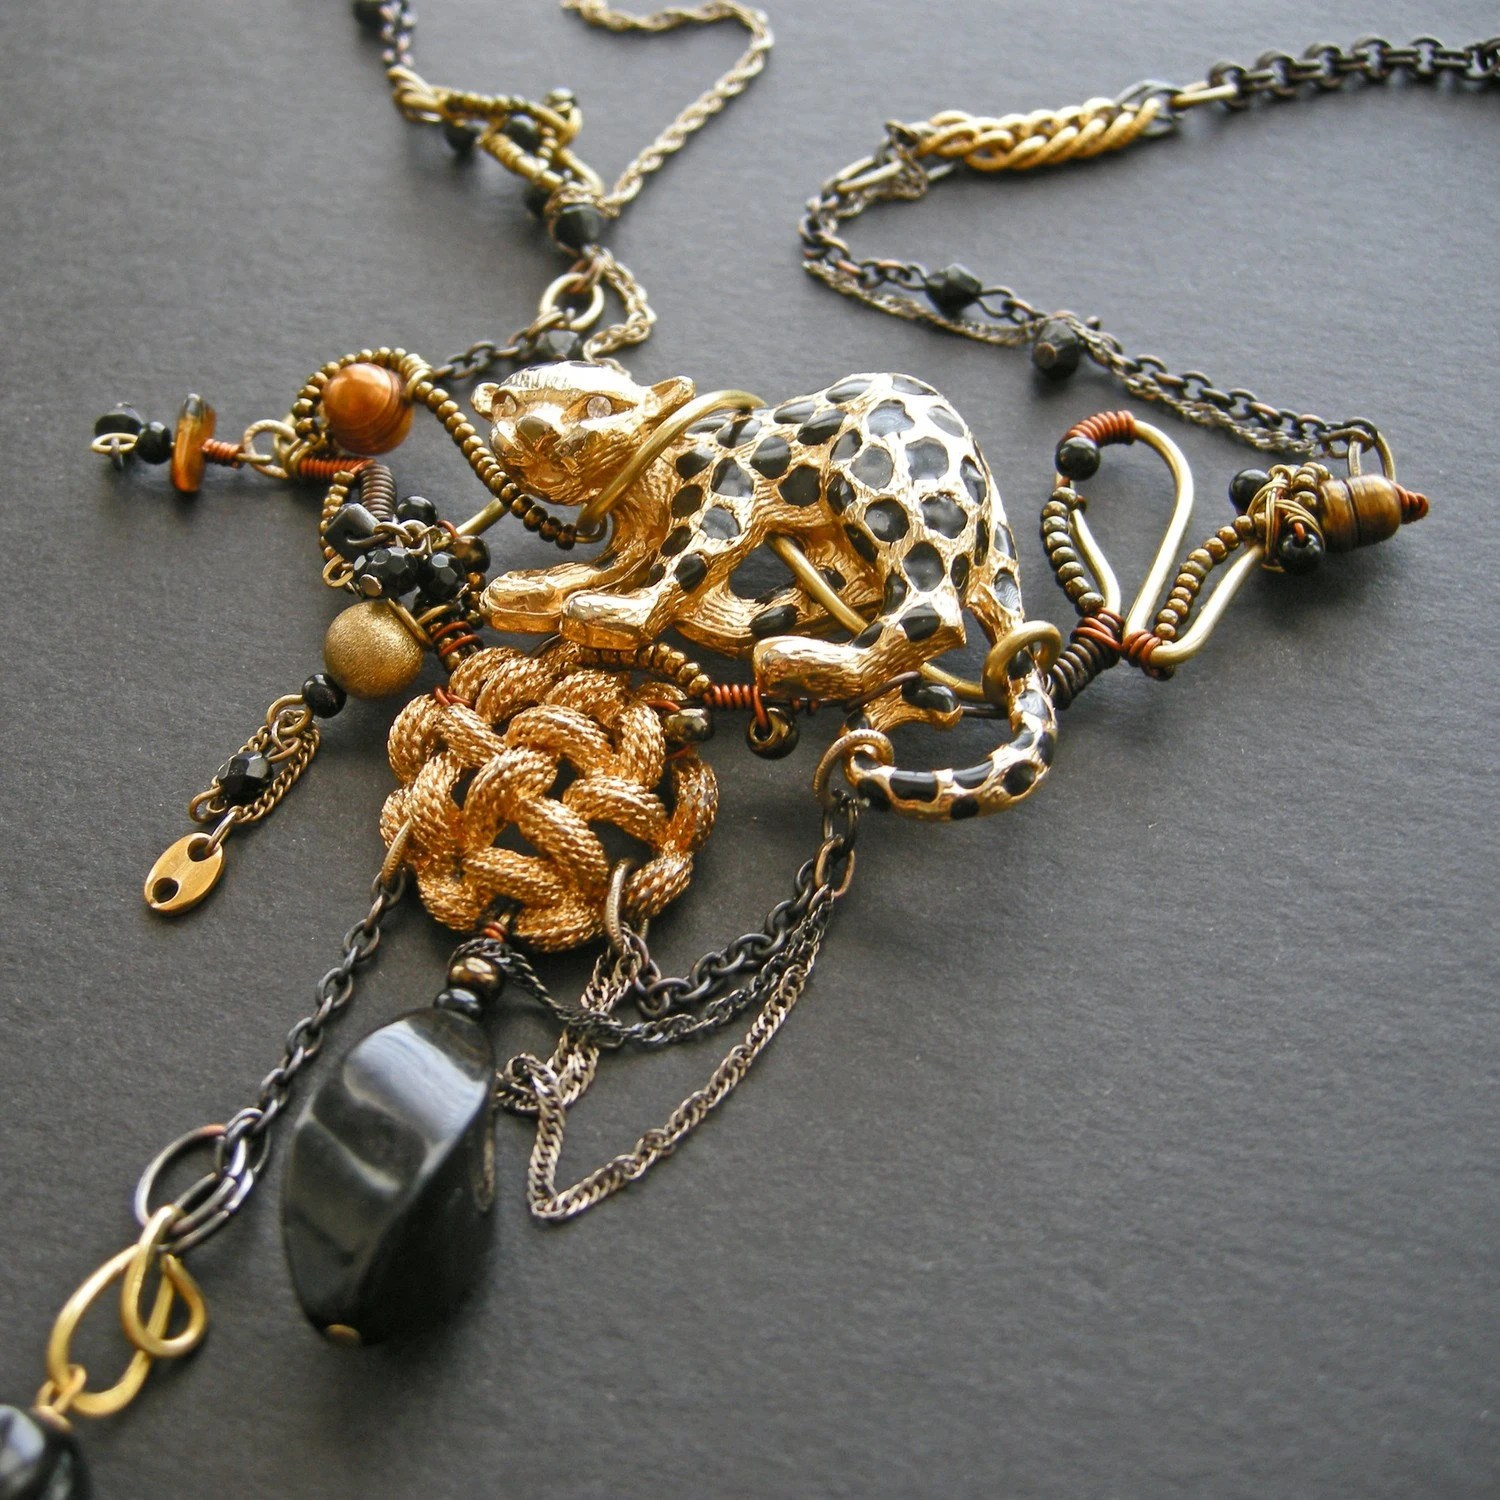 Domesticated Leopard Necklace